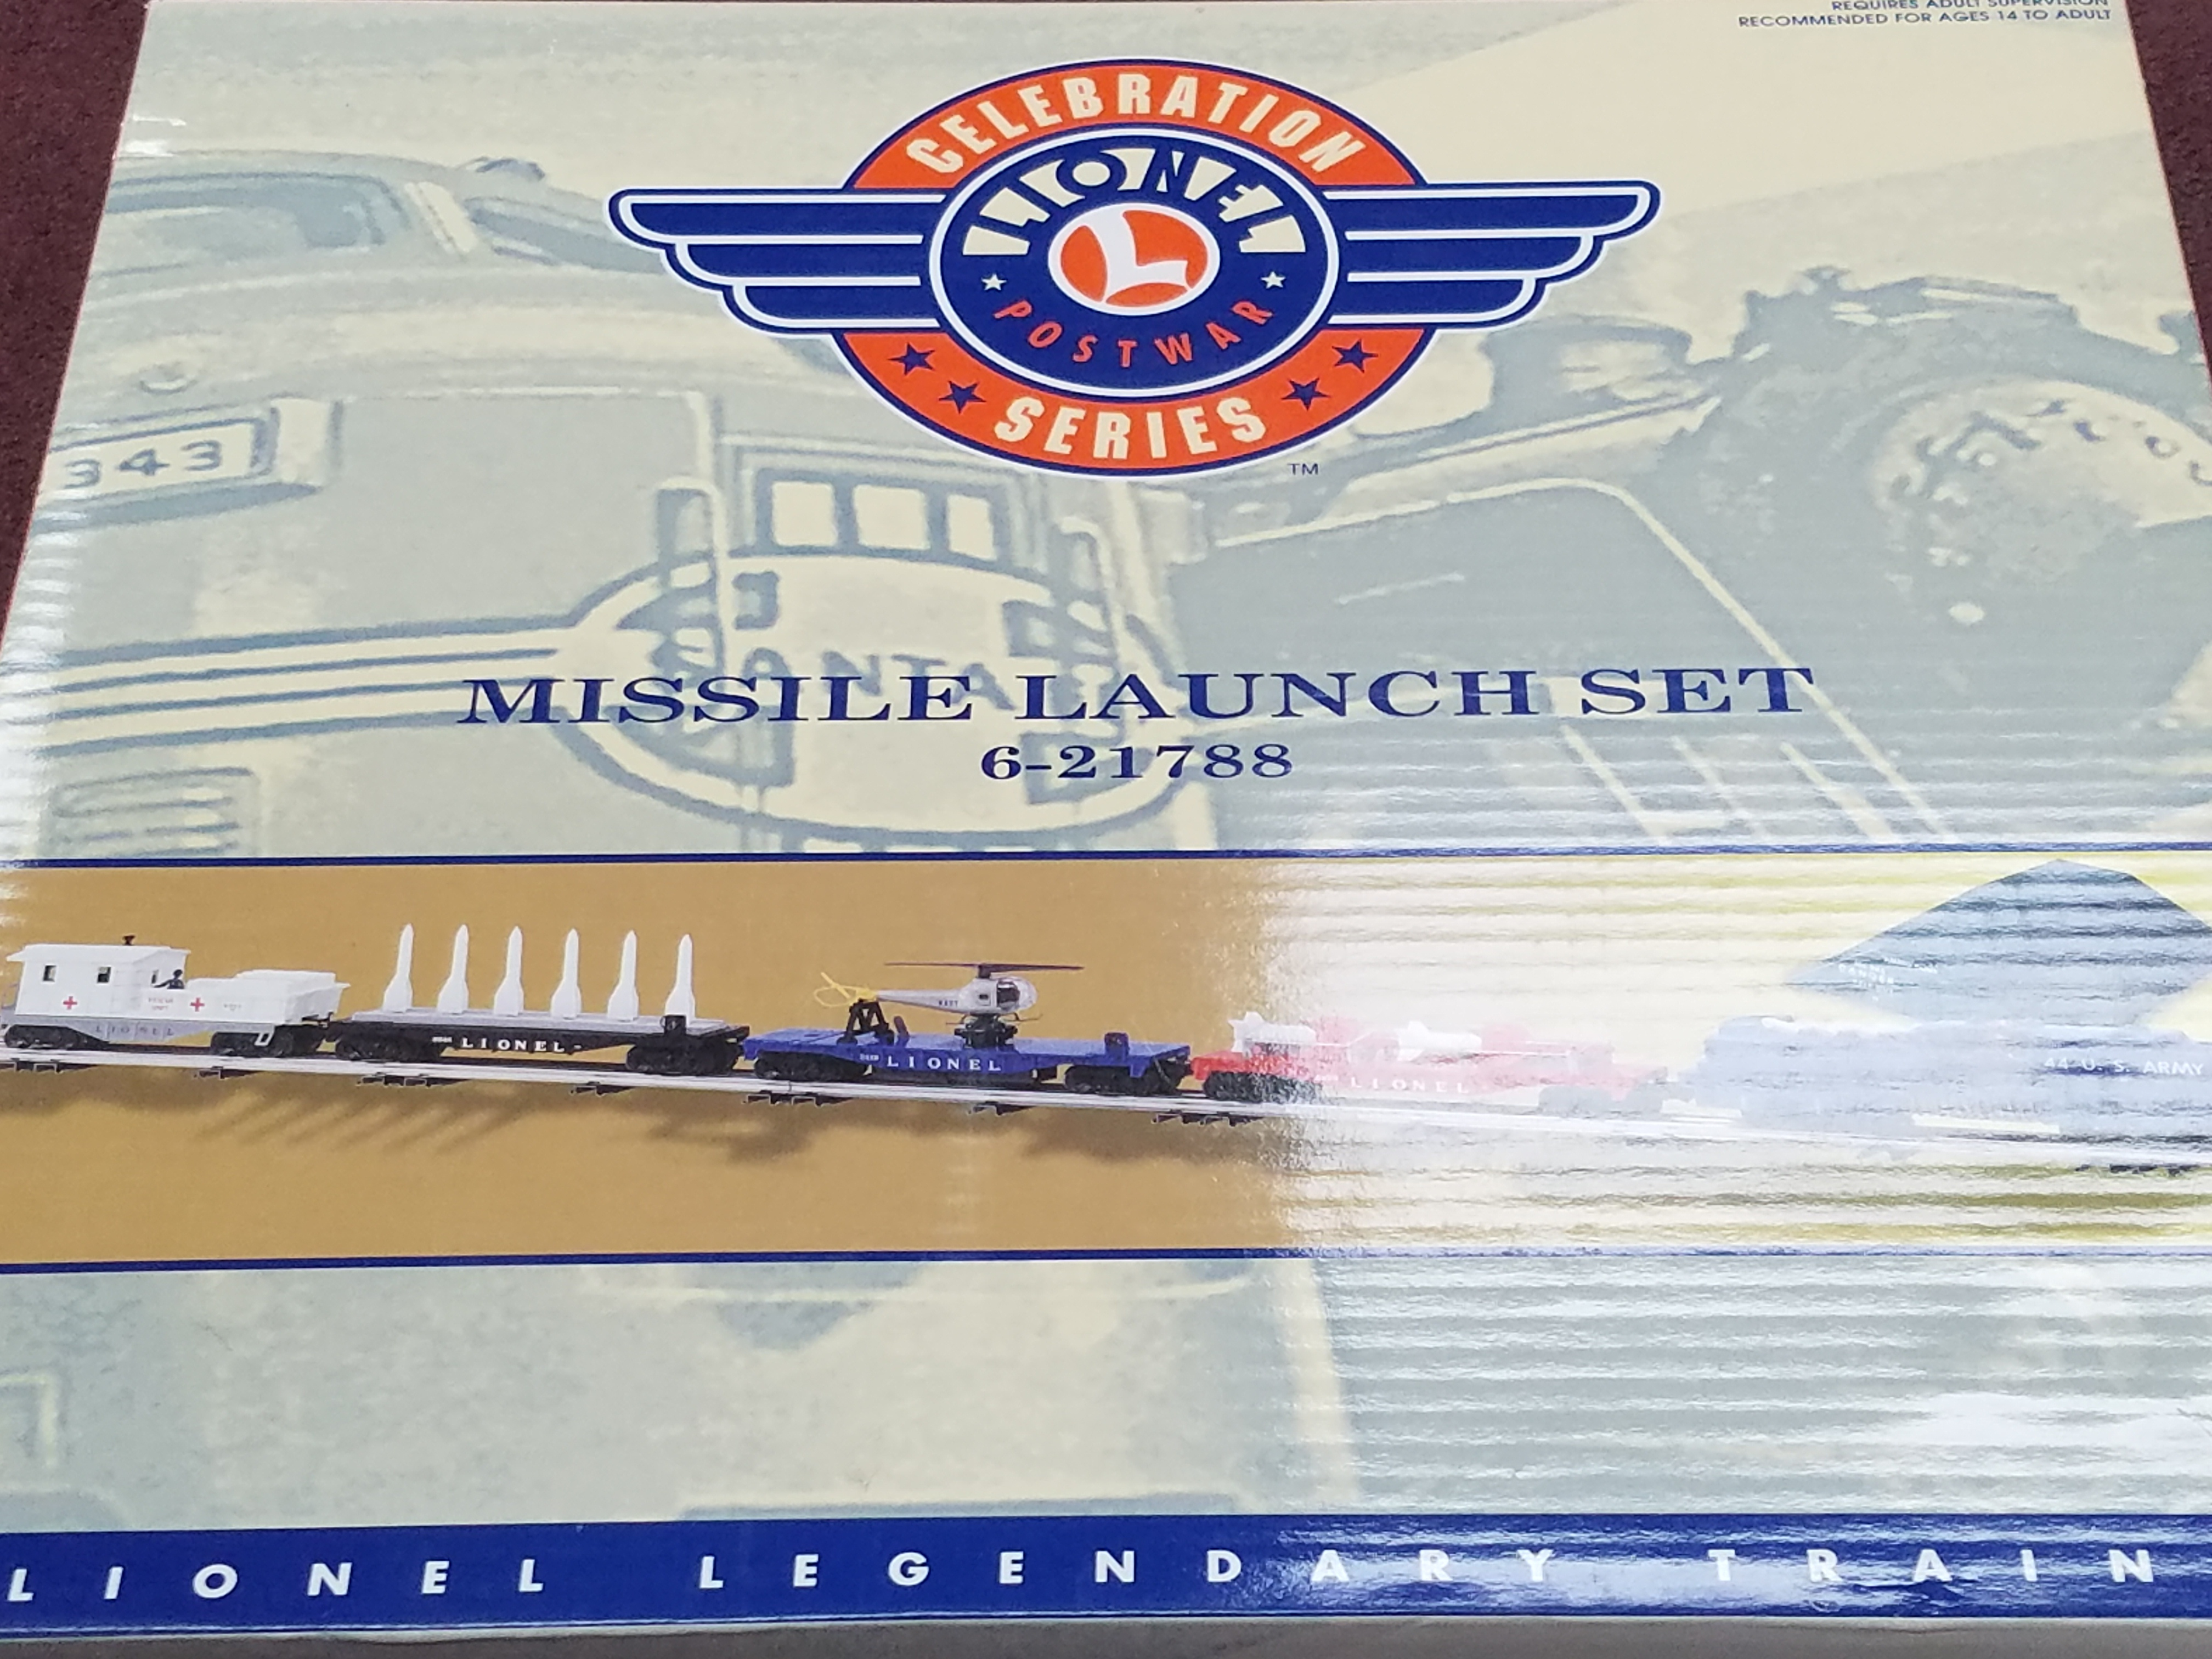 LIONEL - 6-21788 - CELEBRATION MISSILE LAUNCH SET